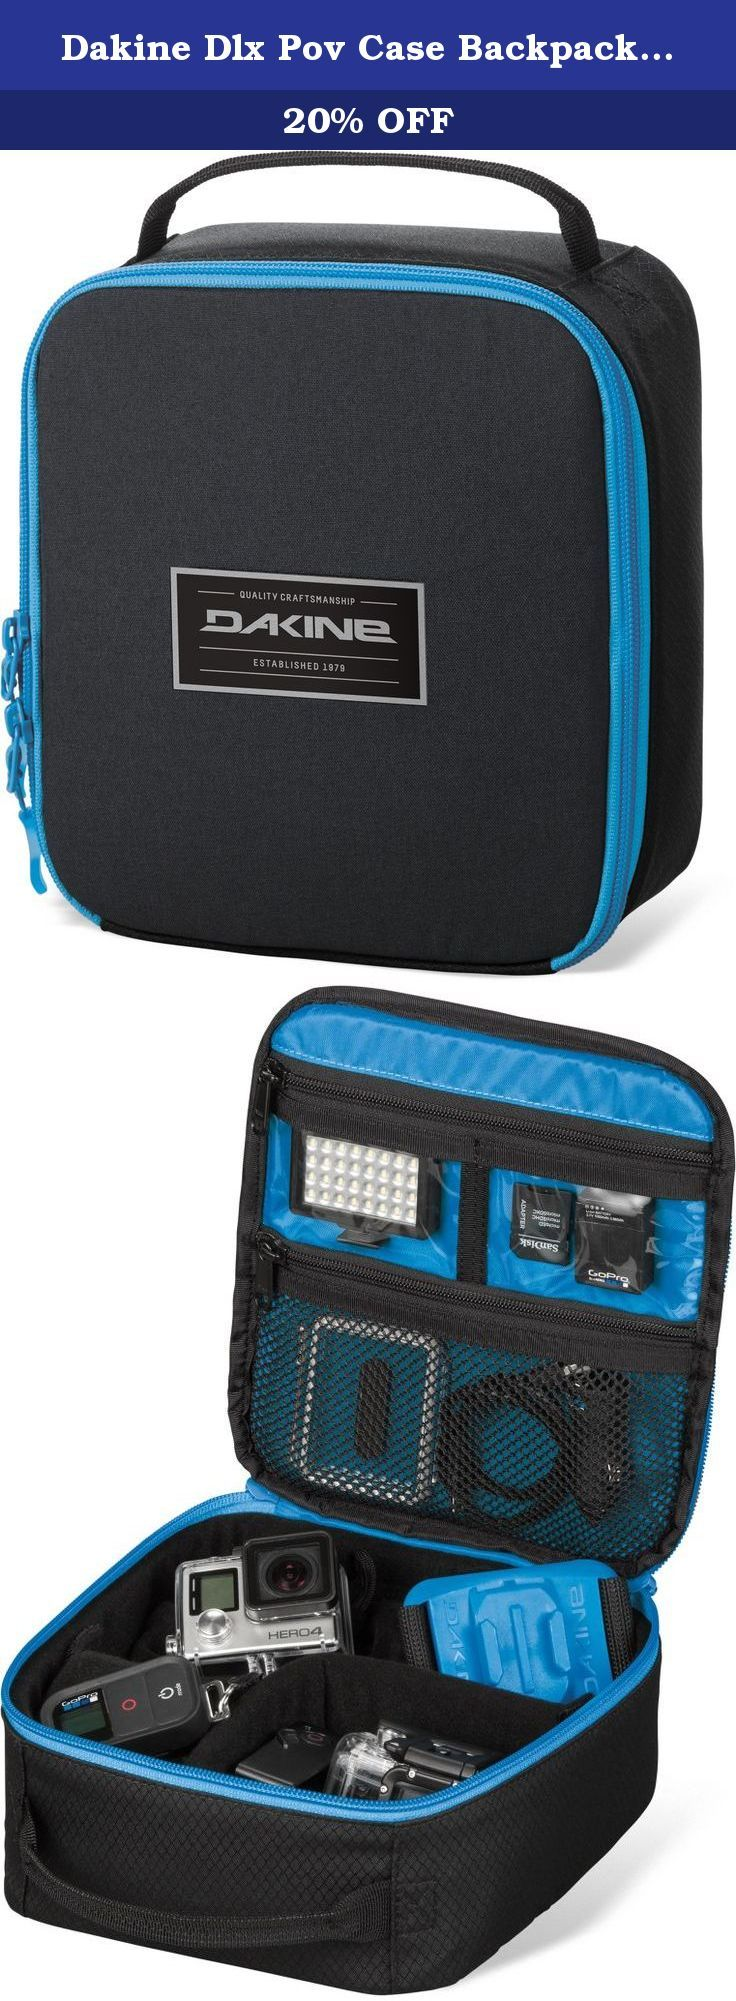 Dakine Dlx Pov Case Backpack, One Size, Tabor. Compatible with GoPro and other pov cameras, memory card pockets, removable camera bag, adjustable dividers, fleece lined.